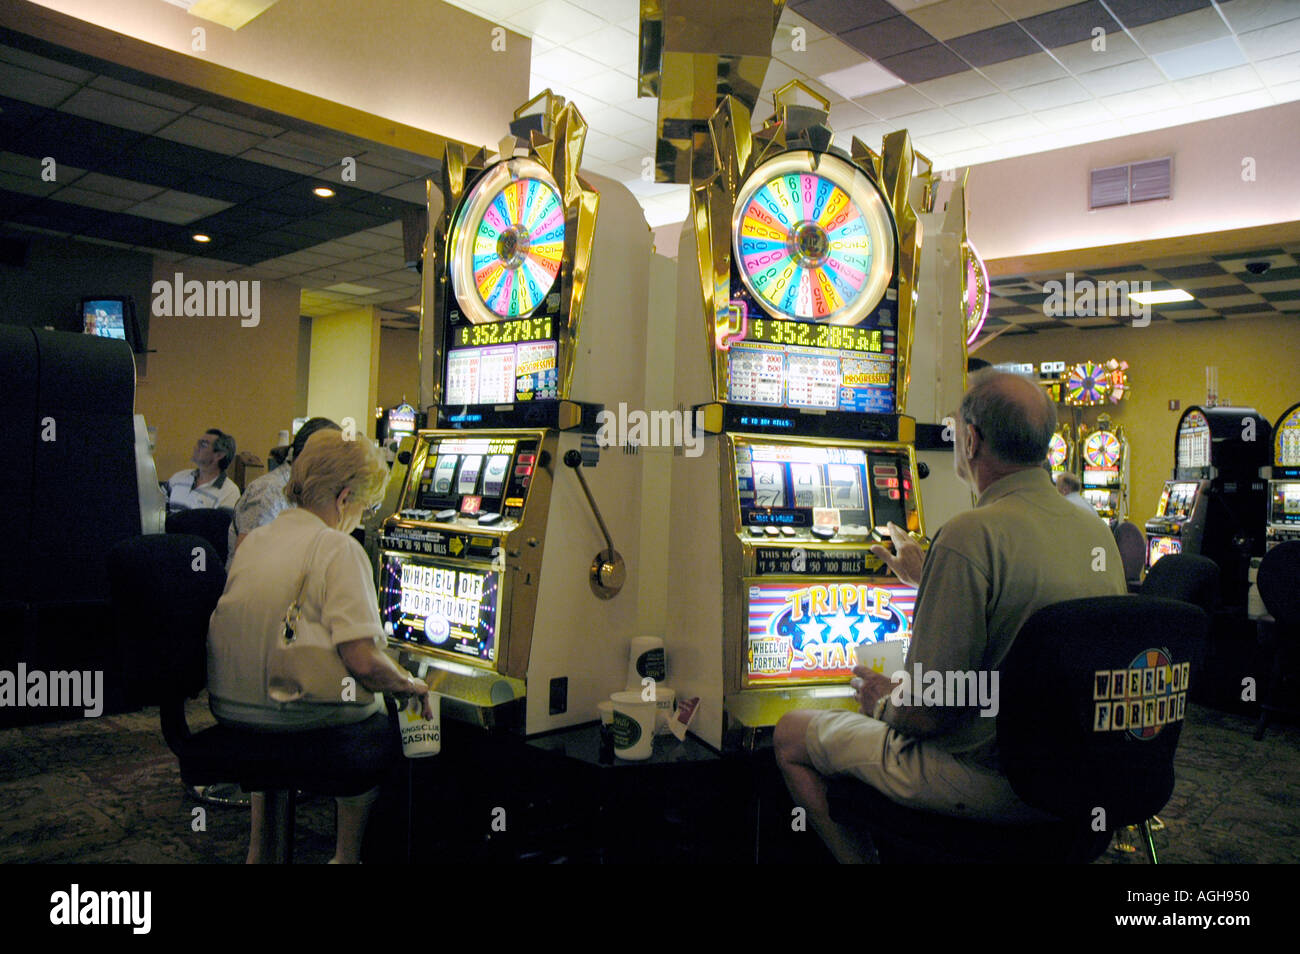 Gambling casino in michigan casino design estimation tools